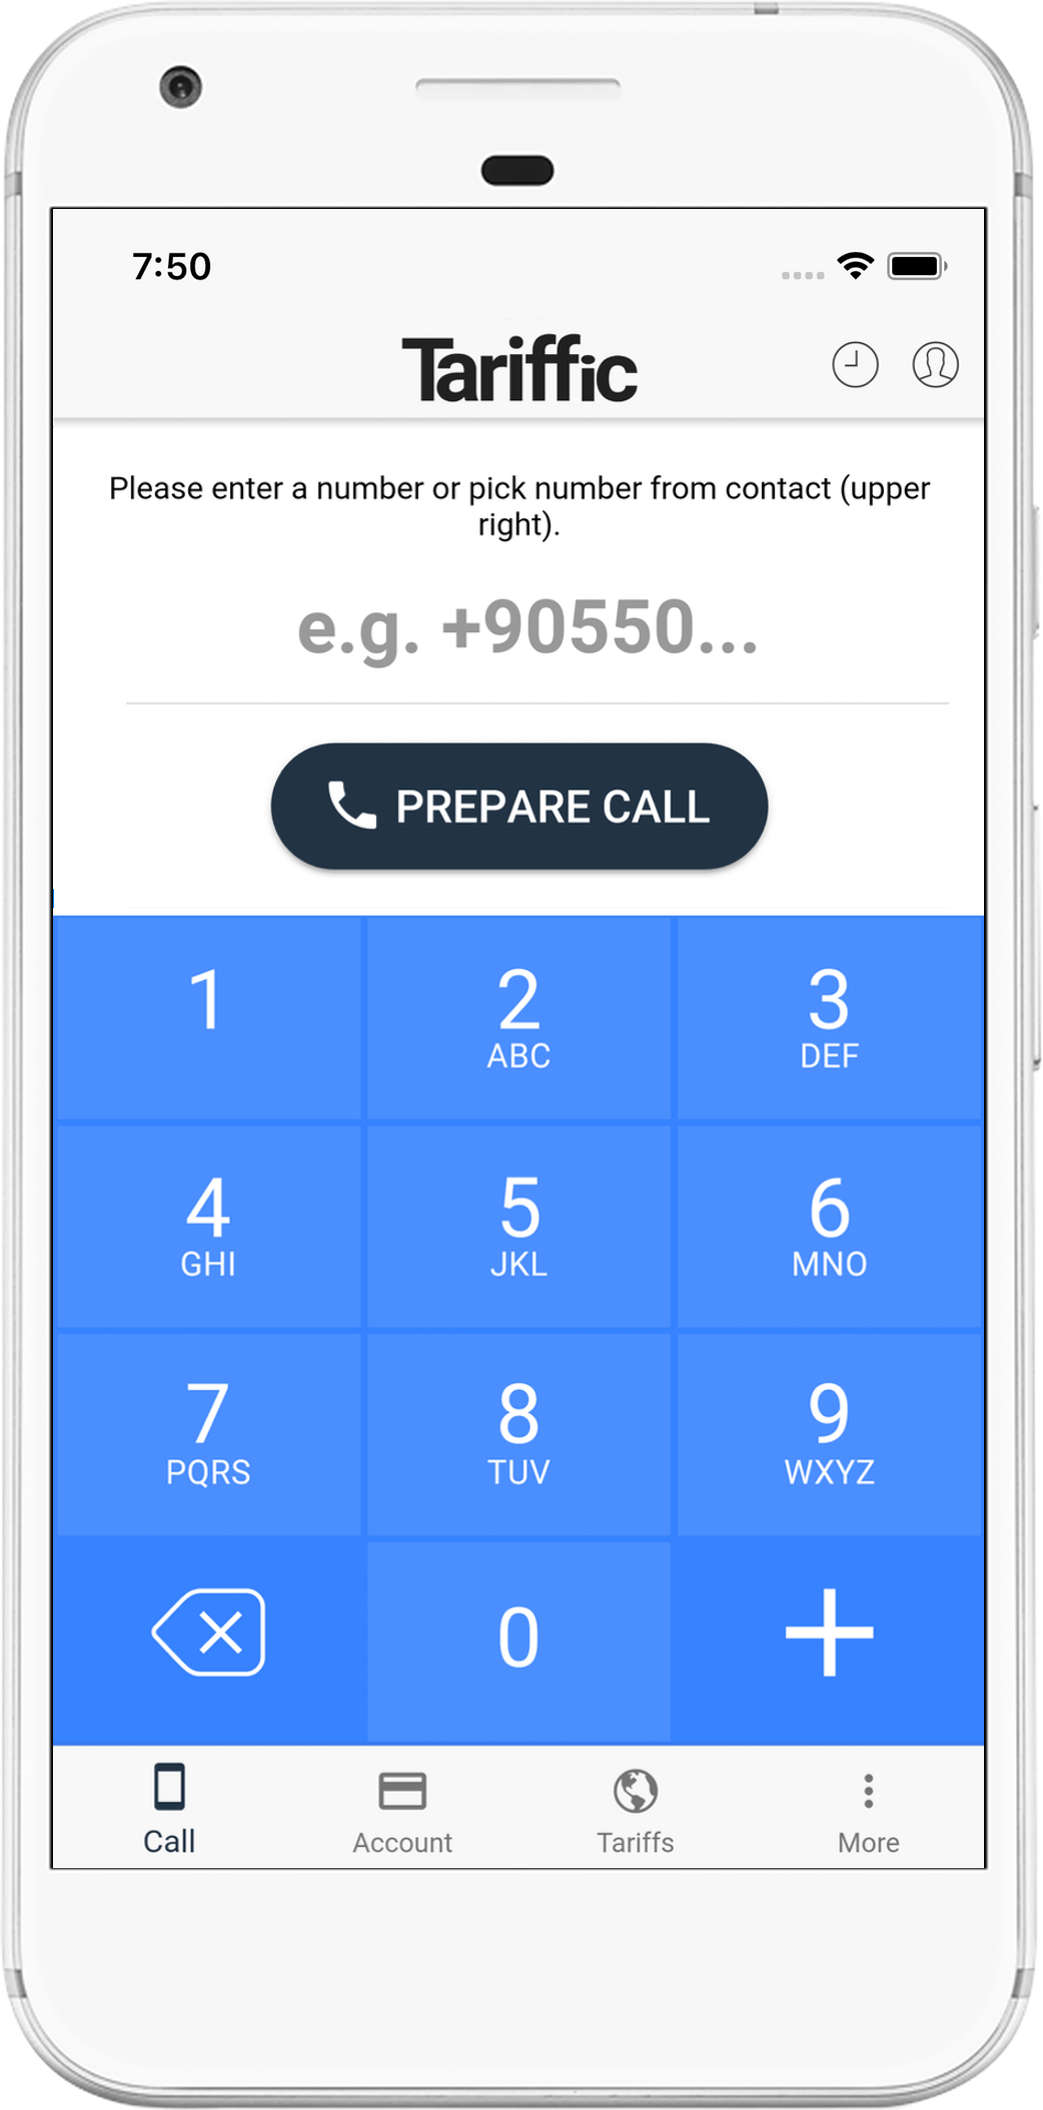 Tariffic for Android - Low cost international phone calls